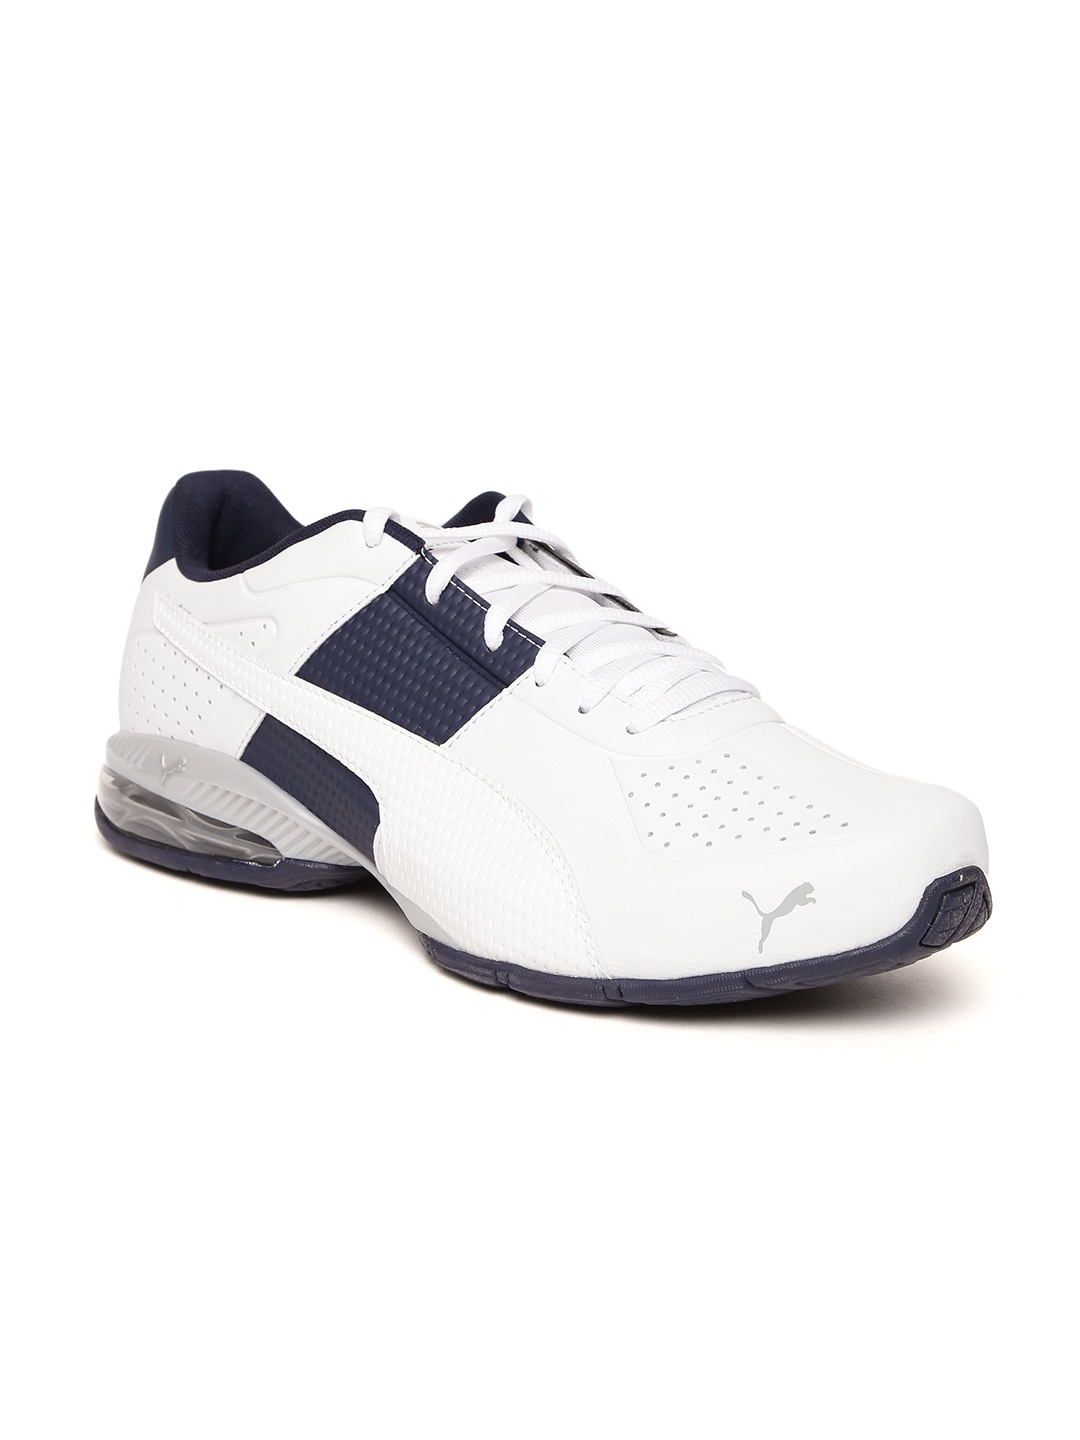 429803e0eb0ab4 Puma Lux Scott Sports Shoes - Buy Puma Lux Scott Sports Shoes online in  India